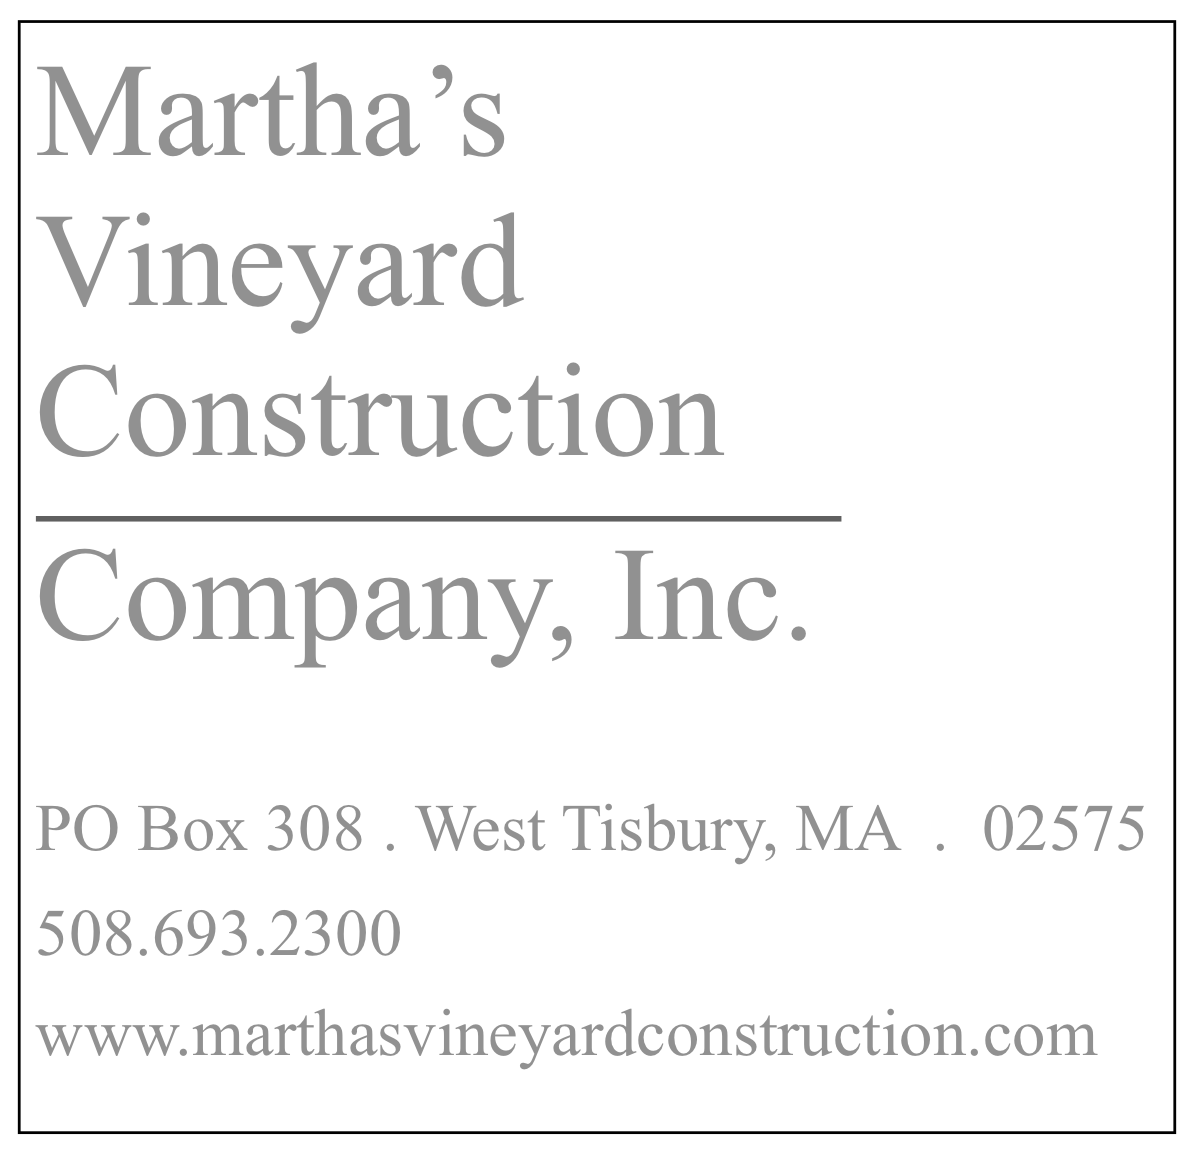 Martha's Vineyard Construction Company